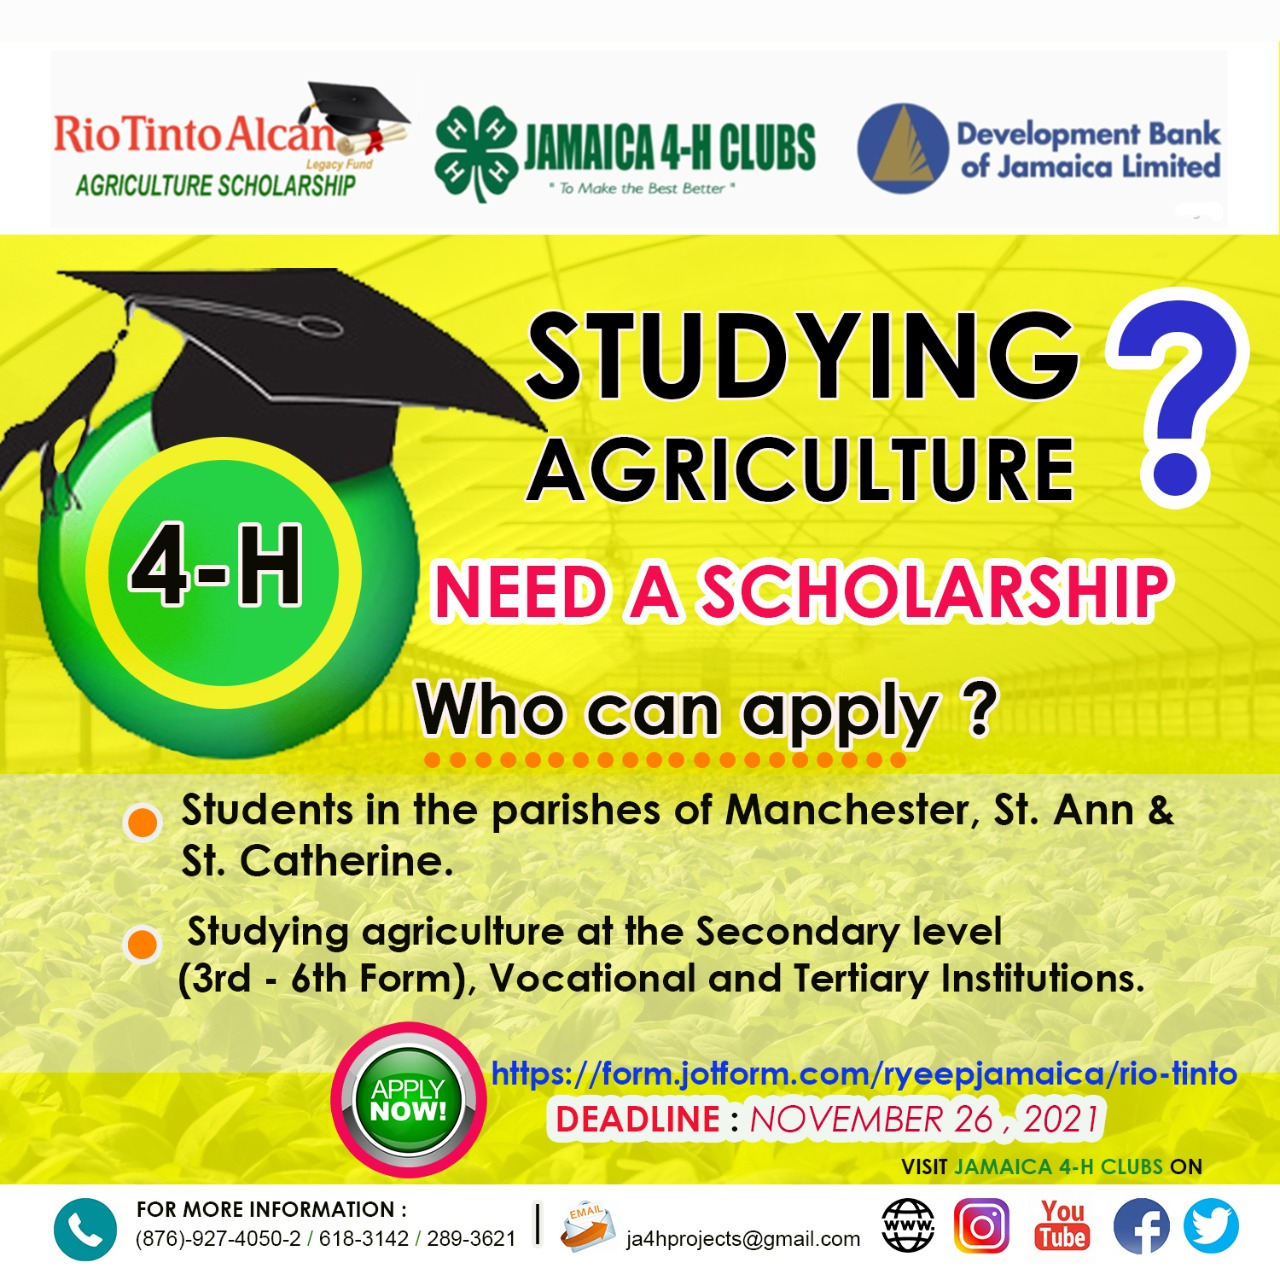 AGRICULTURE SCHOLARSHIPS AVAILABLE.